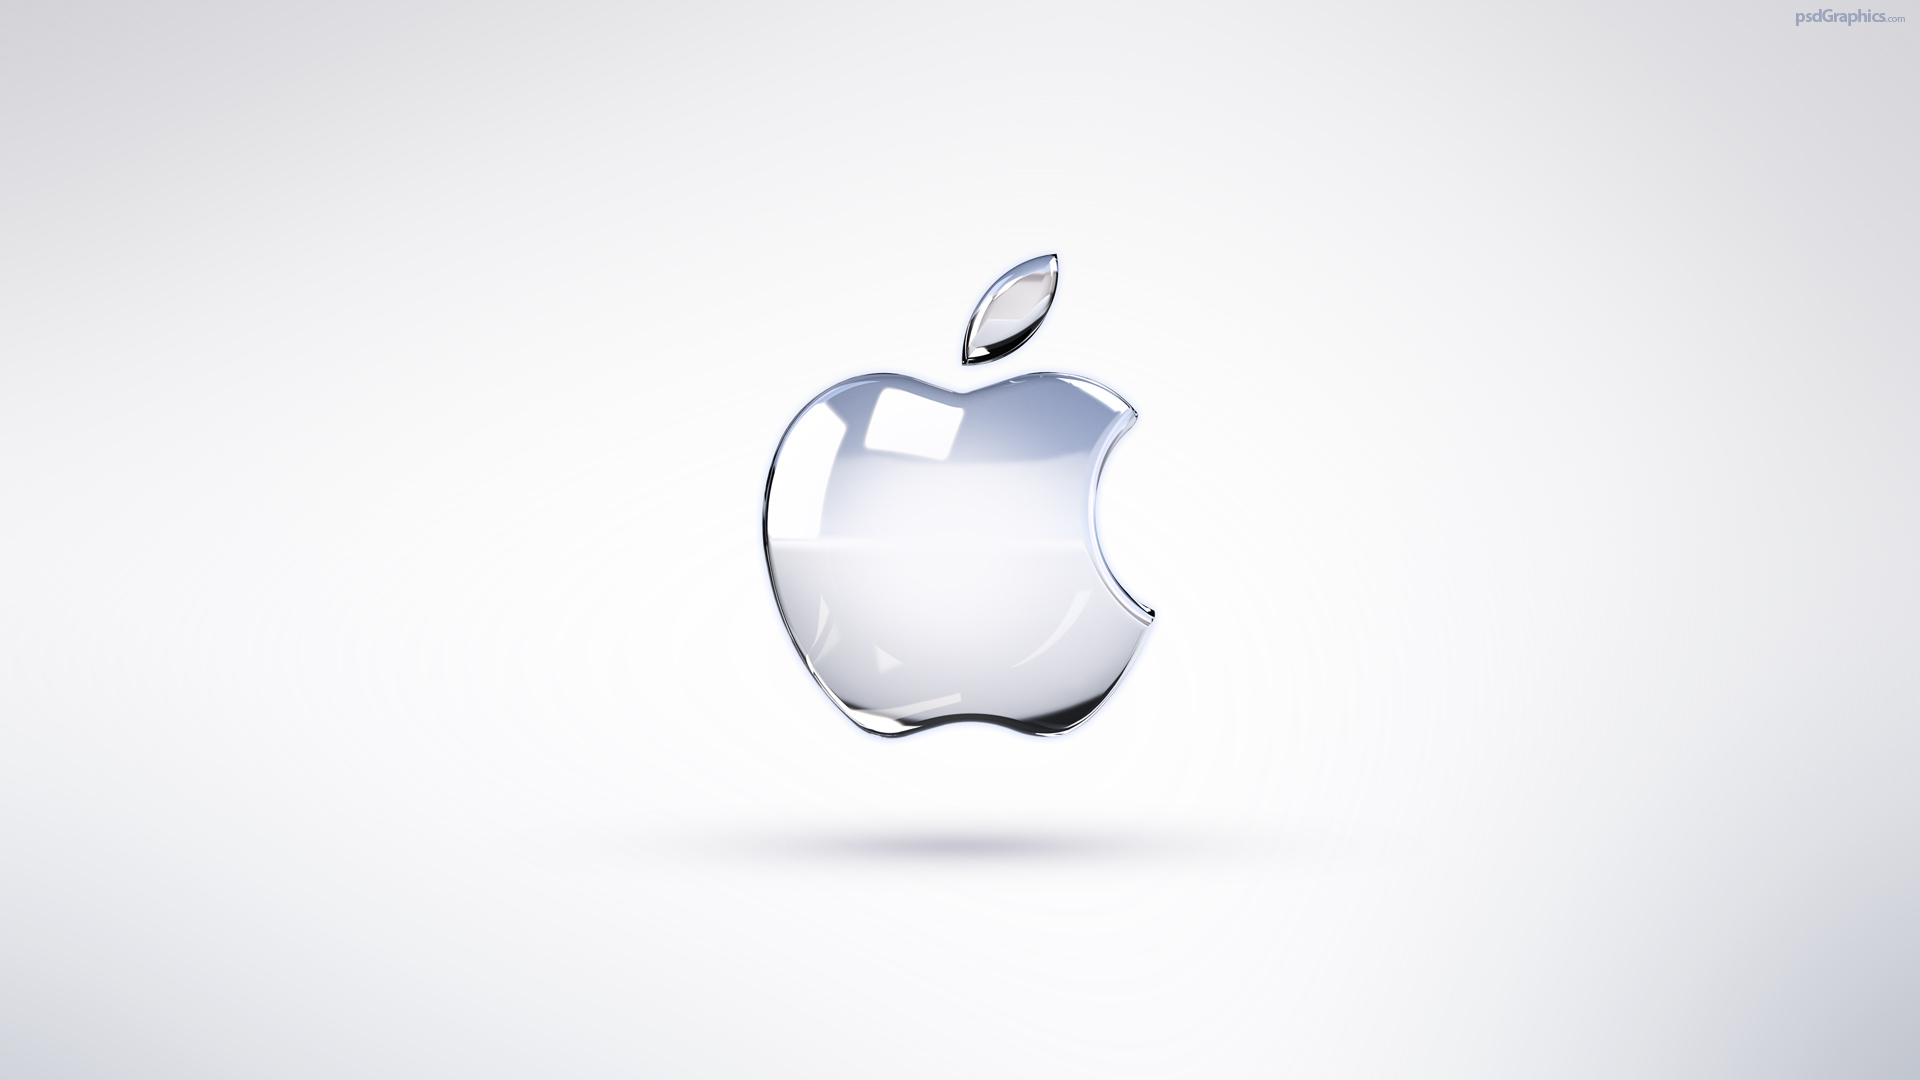 Apple Wallpaper Hd wallpaper   565351 1920x1080